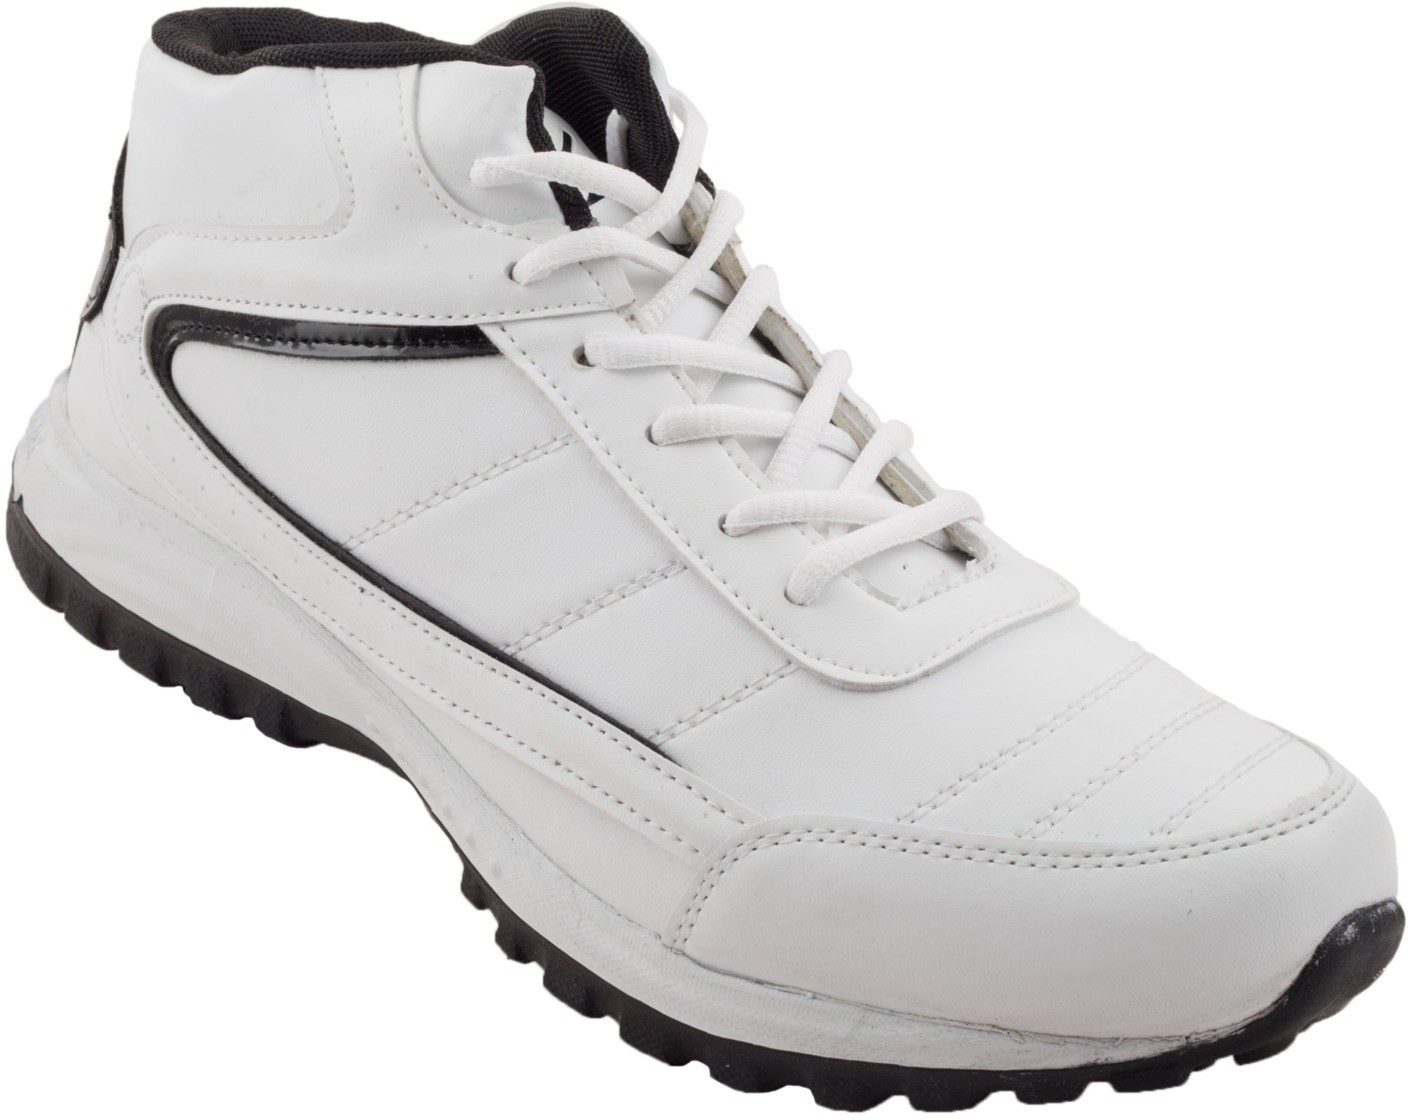 Zovi White and Black Play Sports Running Shoes(White, Grey)